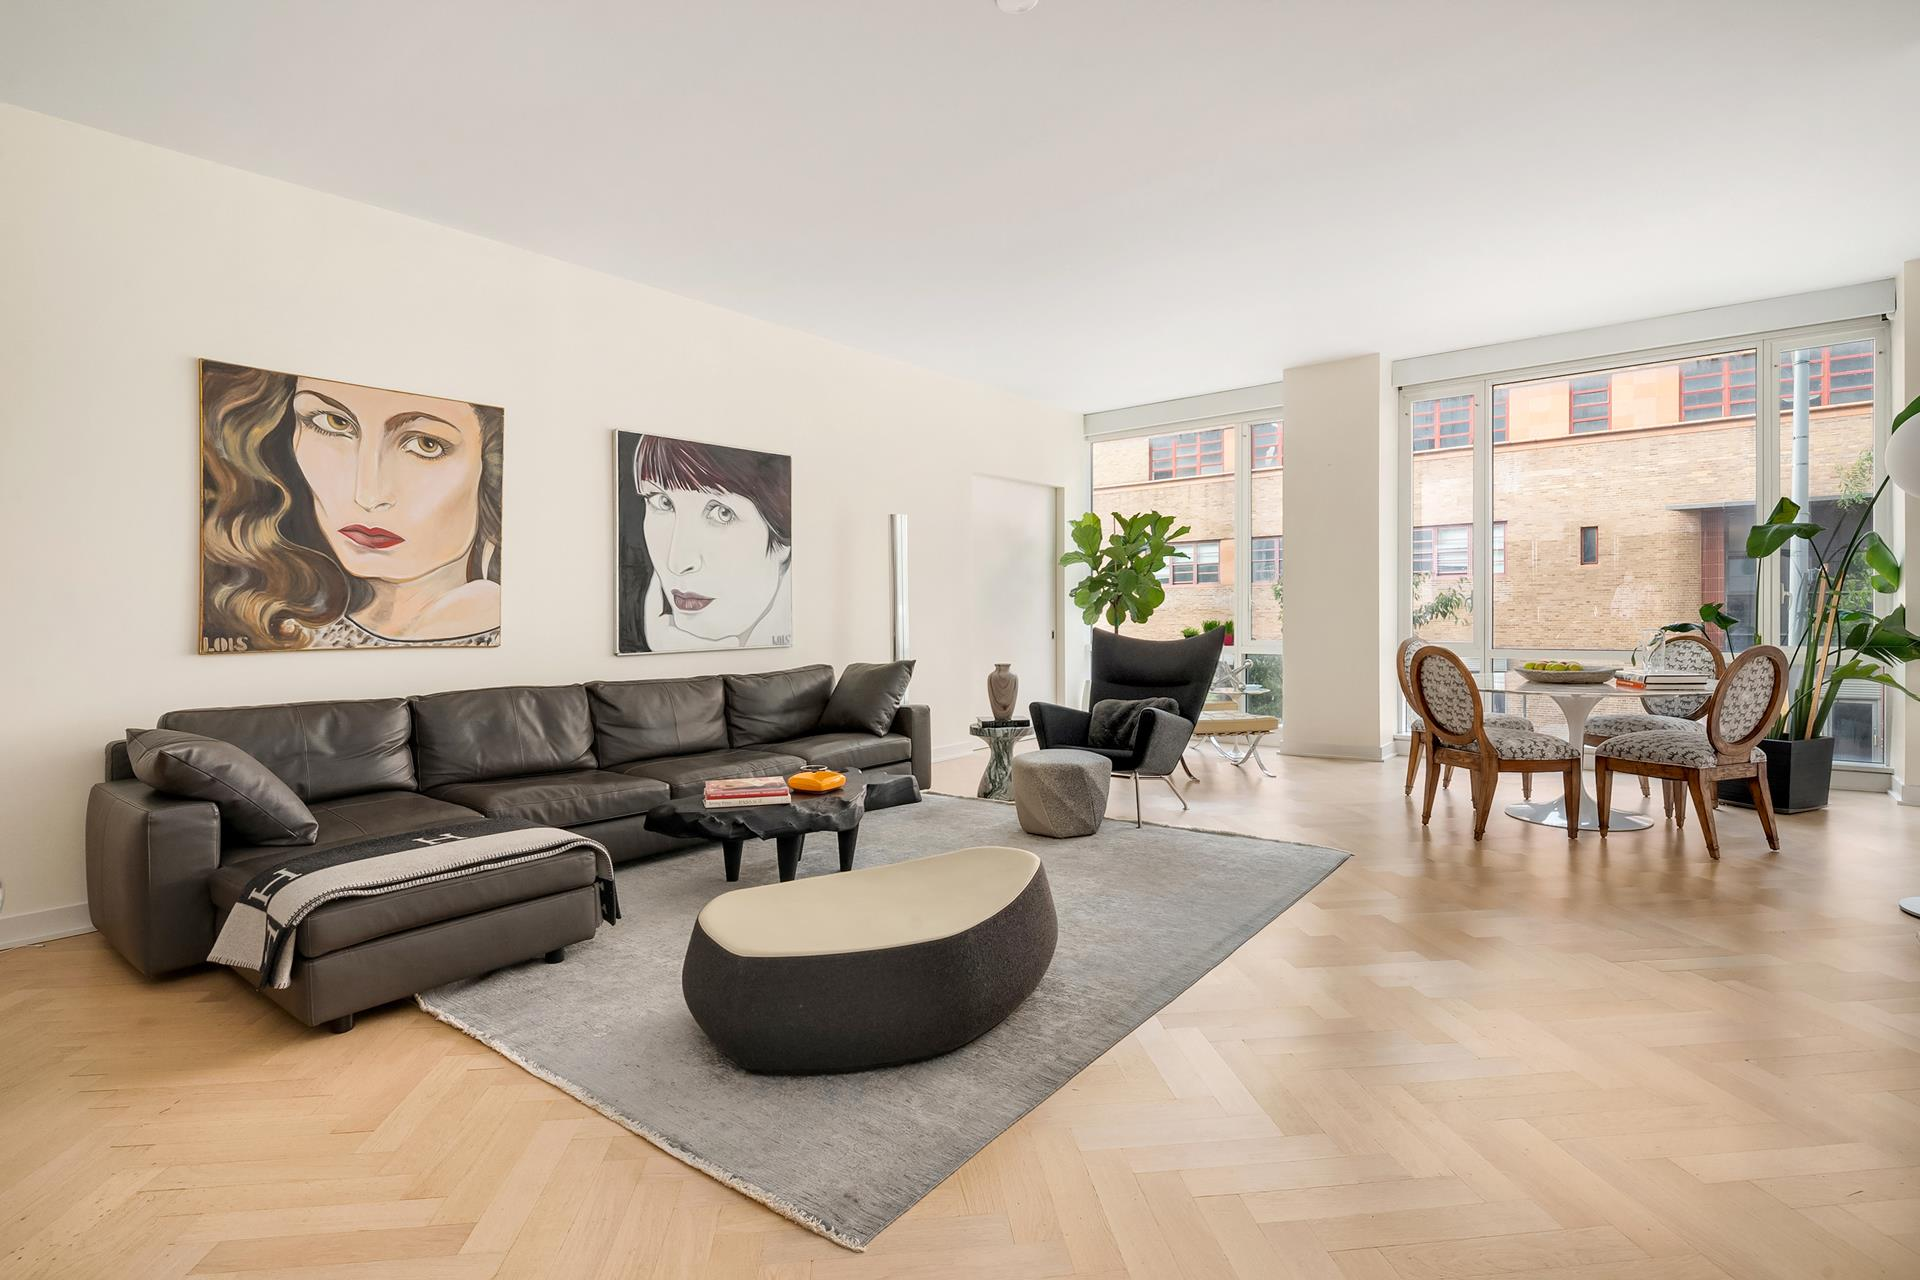 Welcome to the best that West Soho/ Hudson Square has to offer. this expansive split 2BR 2 Bath plus Home Office. This home has been beautifully renovated and features top of the line appliances. Located just steps from the new Google and Disney headquarters this home offers the complete package of size, style, & location!  The Urban Glass House was designed by Philip Johnson as a tribute to his modernist roots. The interiors were designed by renowned architect Annabelle Selldorf, the combination of these powerhouse architects makes this 40-unit condominium building an art form in itself. Urban Glass House is a luxury, well-managed intimate, 12 story condominium. Full-time doorman, superintendent, handyman and porter deliver high quality service. There a well-equipped fitness room and yoga room on the second floor. Additional features include storage bins and bike room. Located in West SoHo a block from Hudson River Park. At the crossroads of SoHo, the West Village and Tribeca, this Spring Street masterpiece is within walking distance to downtown's hippest shopping and restaurants.